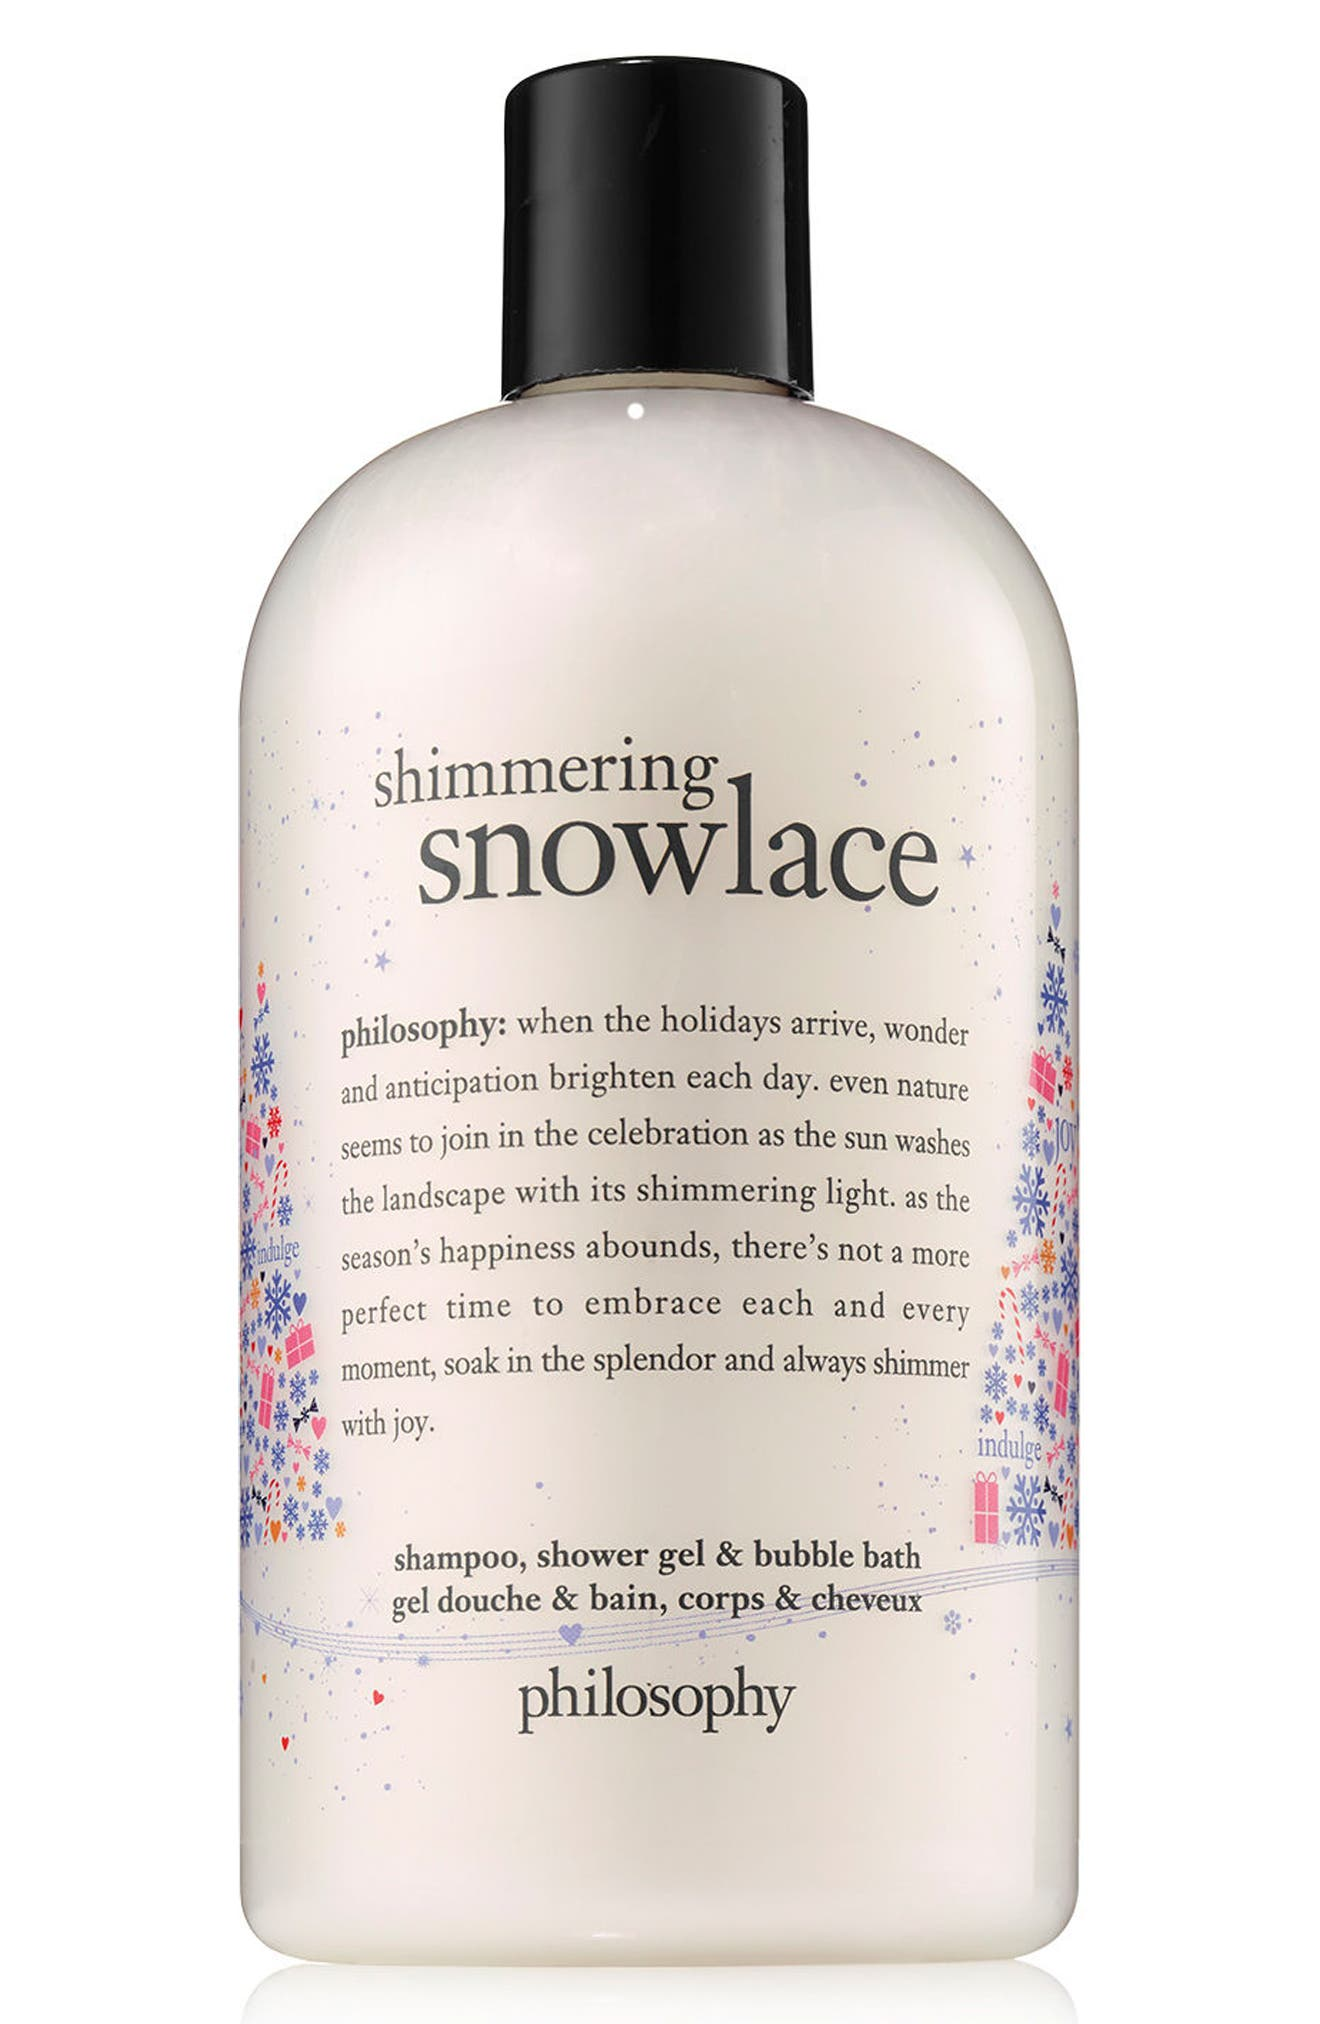 philosophy shimmering snowlace shampoo, shower gel & bubble bath (Limited Edition)